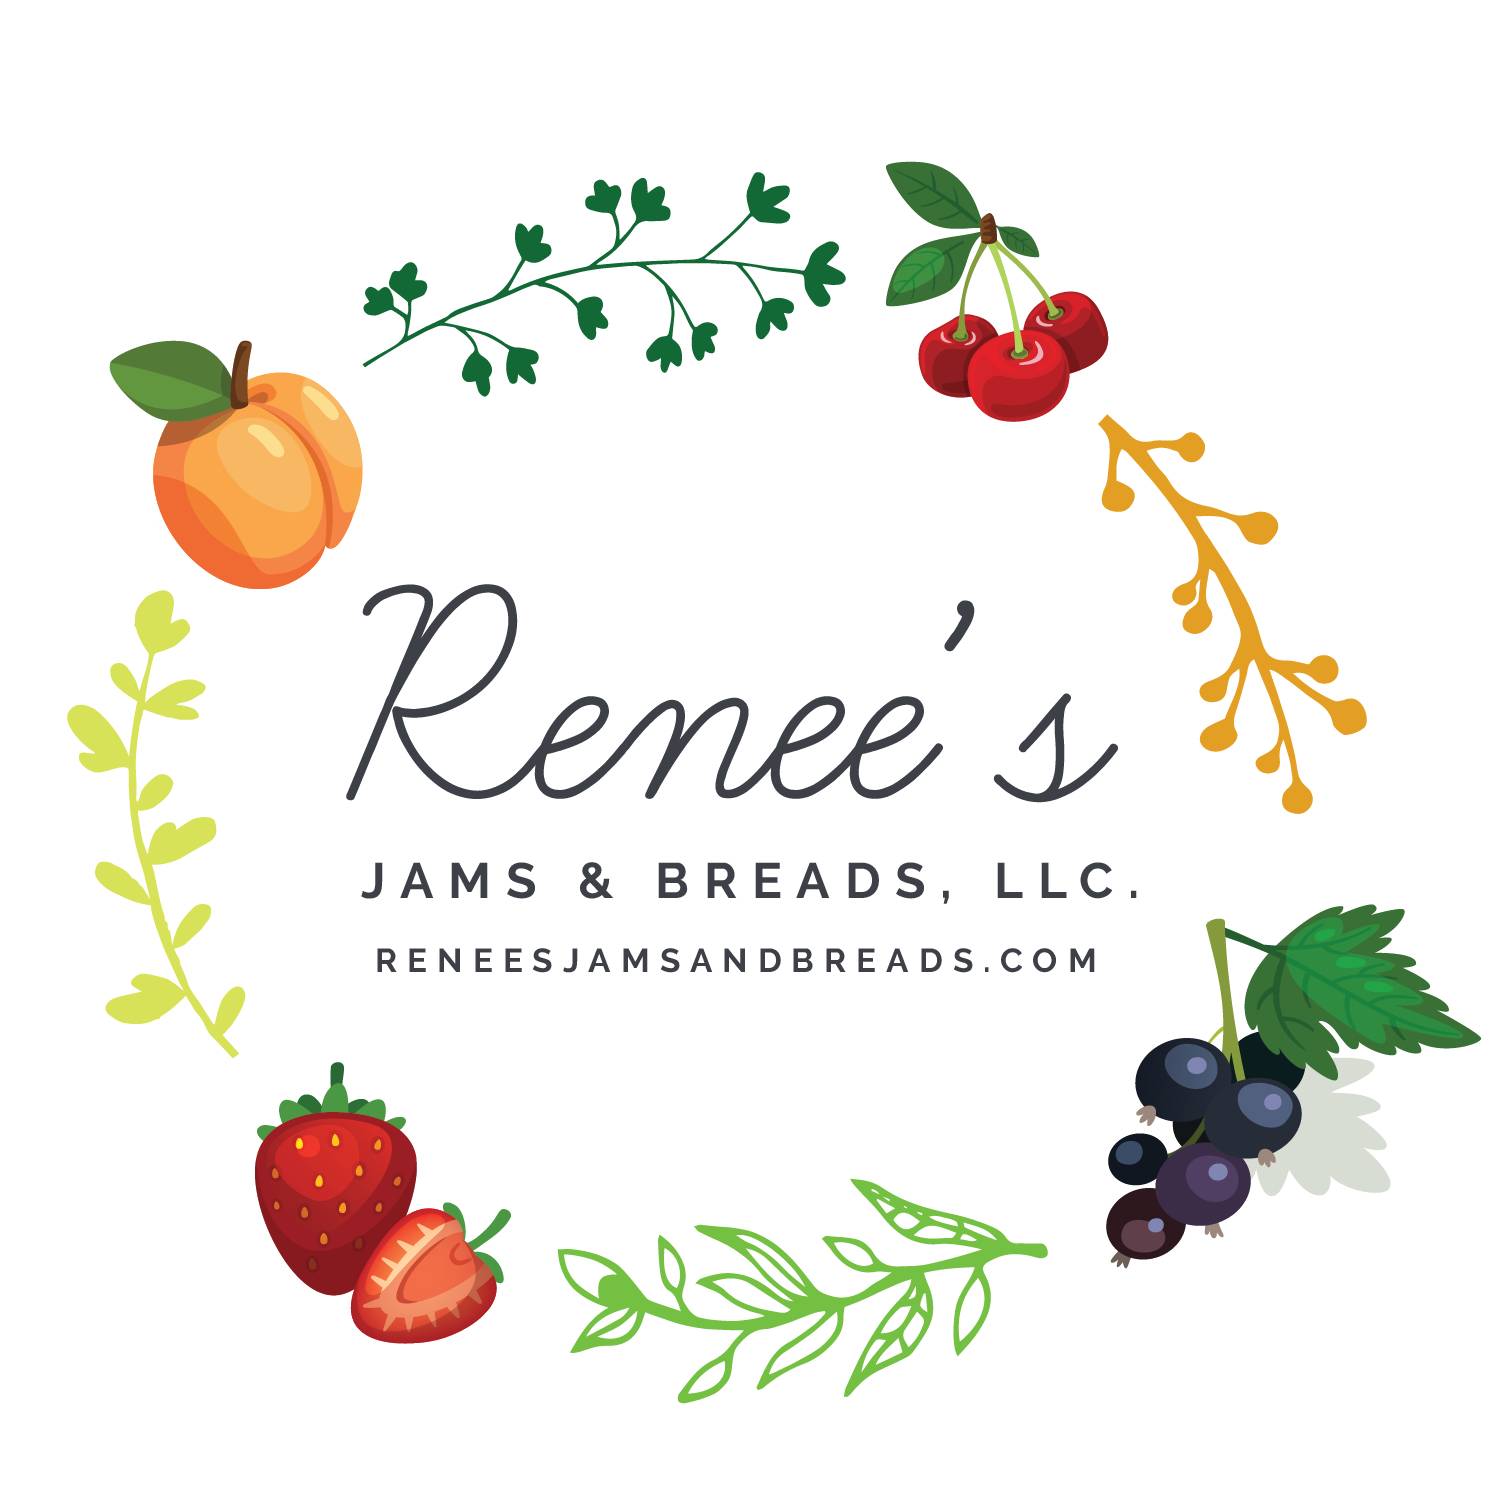 Renee's Jams and Breads, LLC